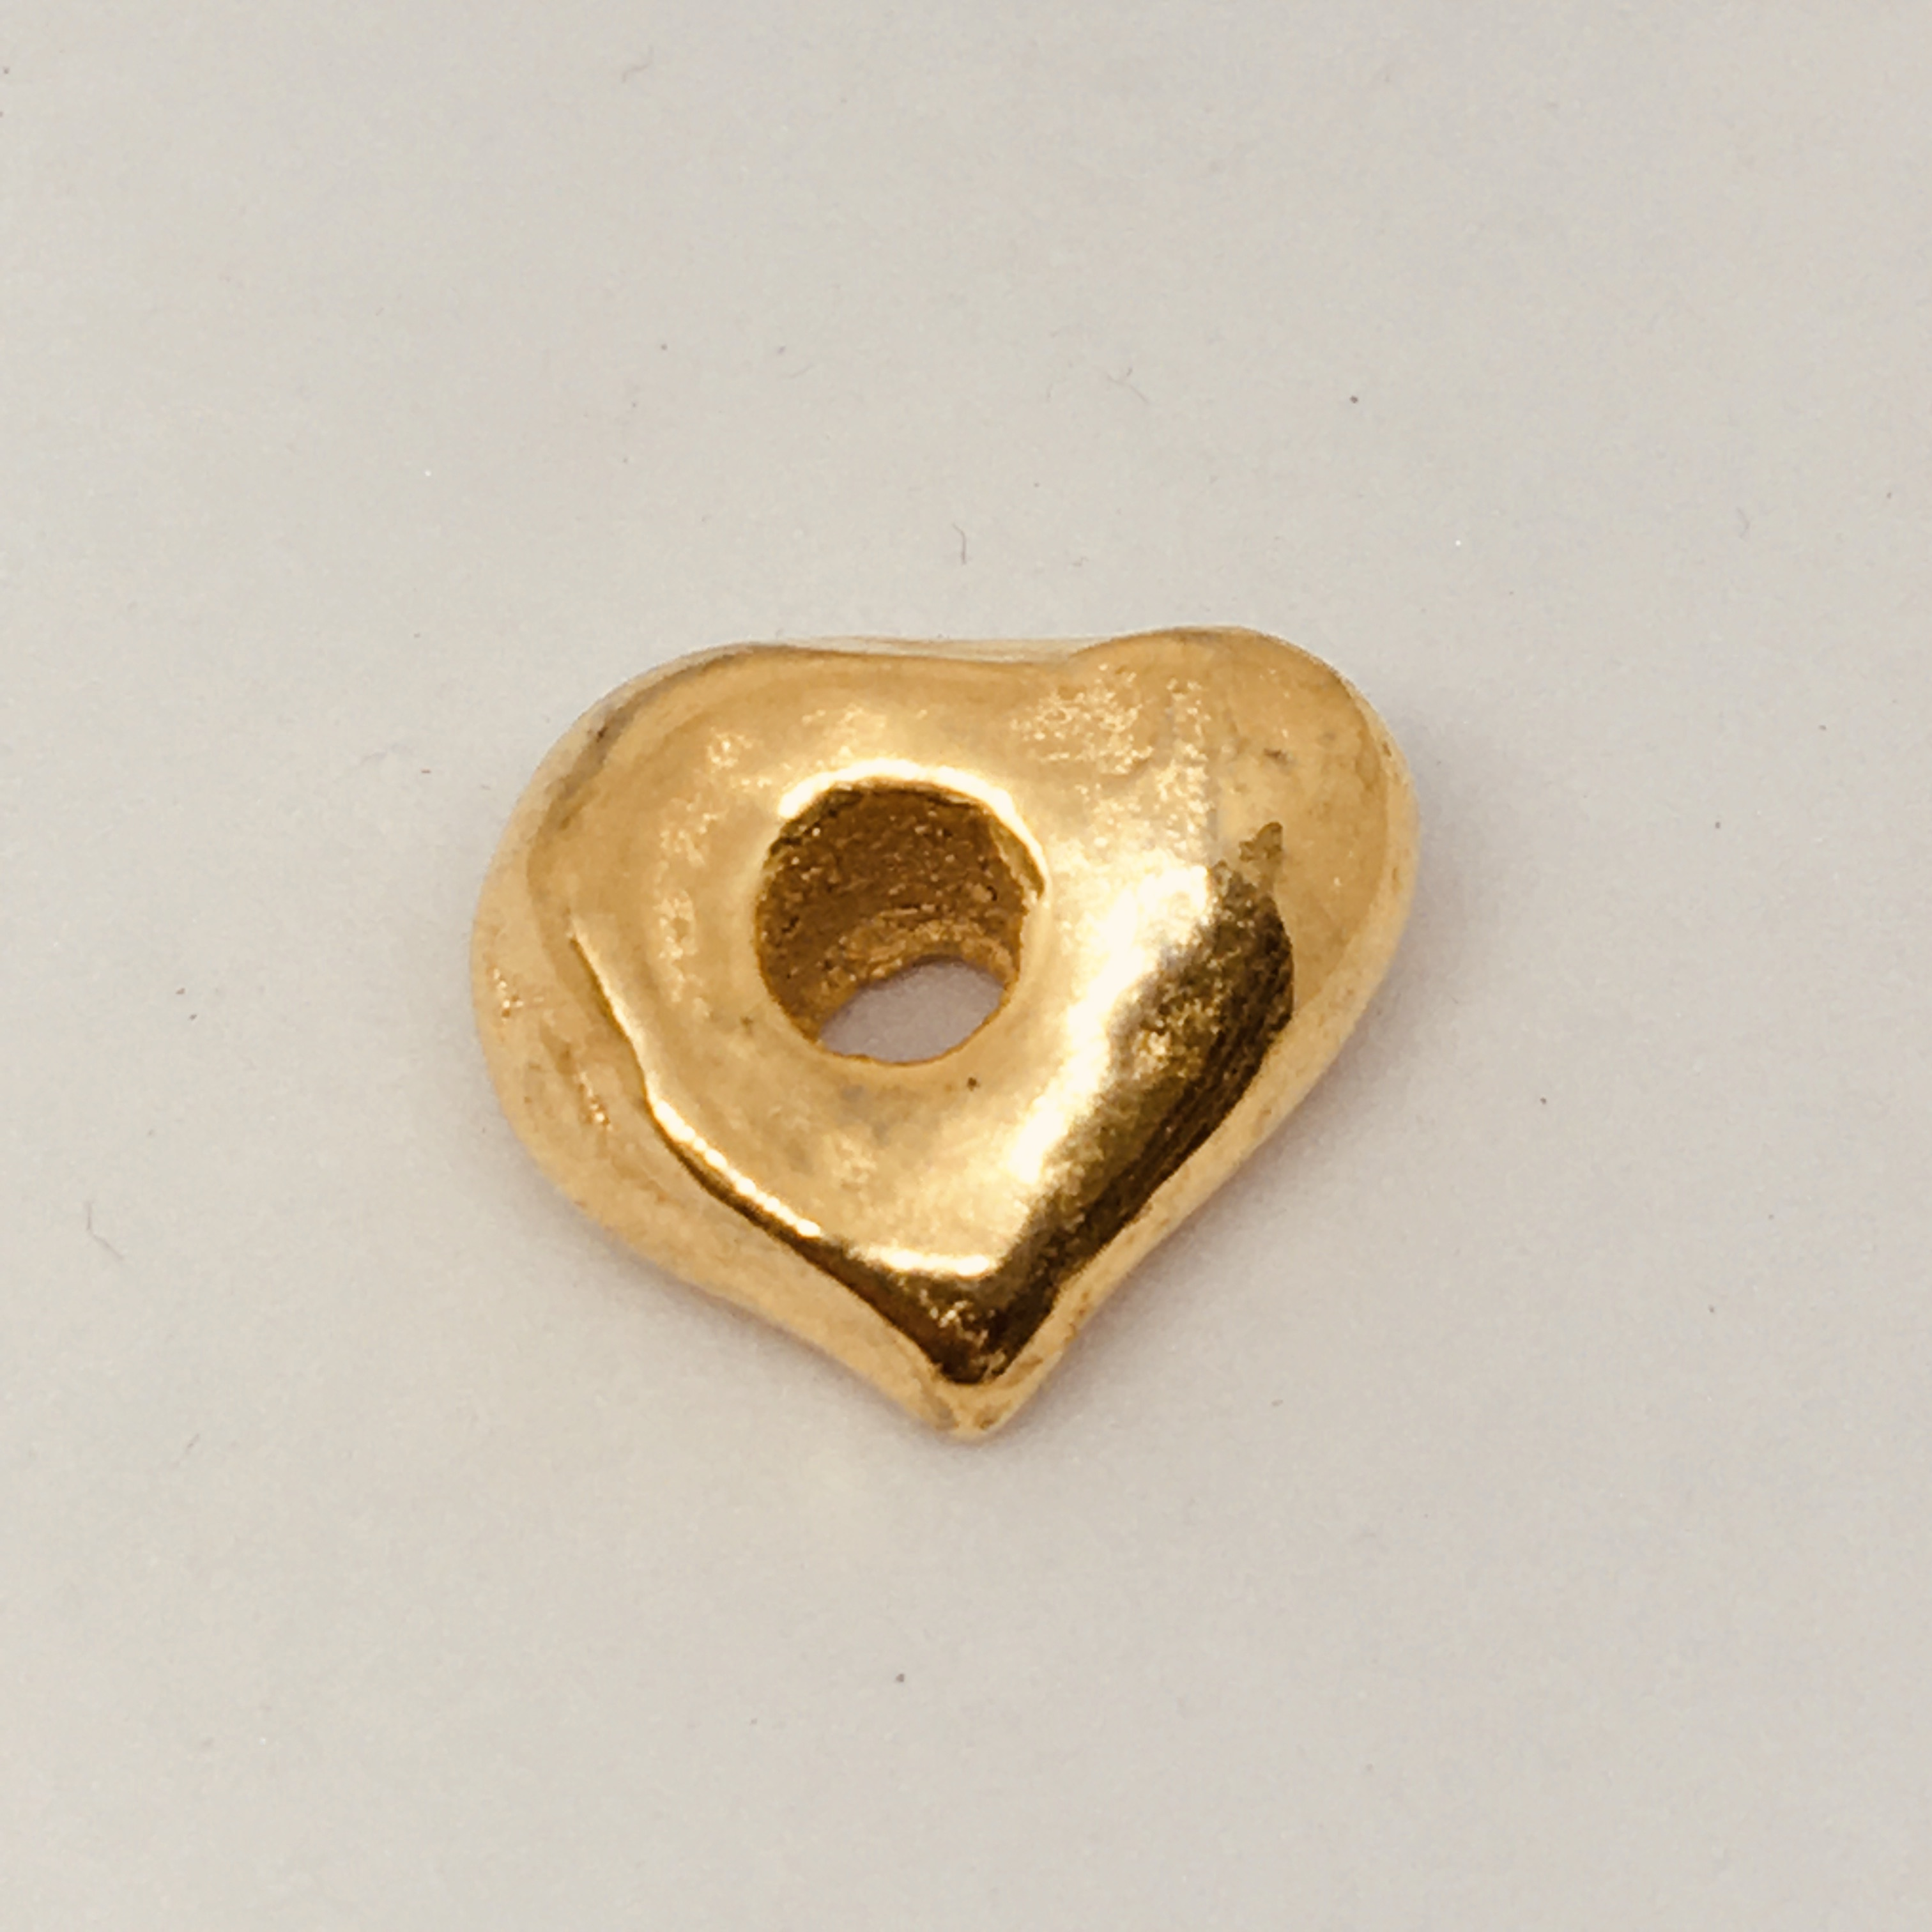 Nugget 16x8mm Gold